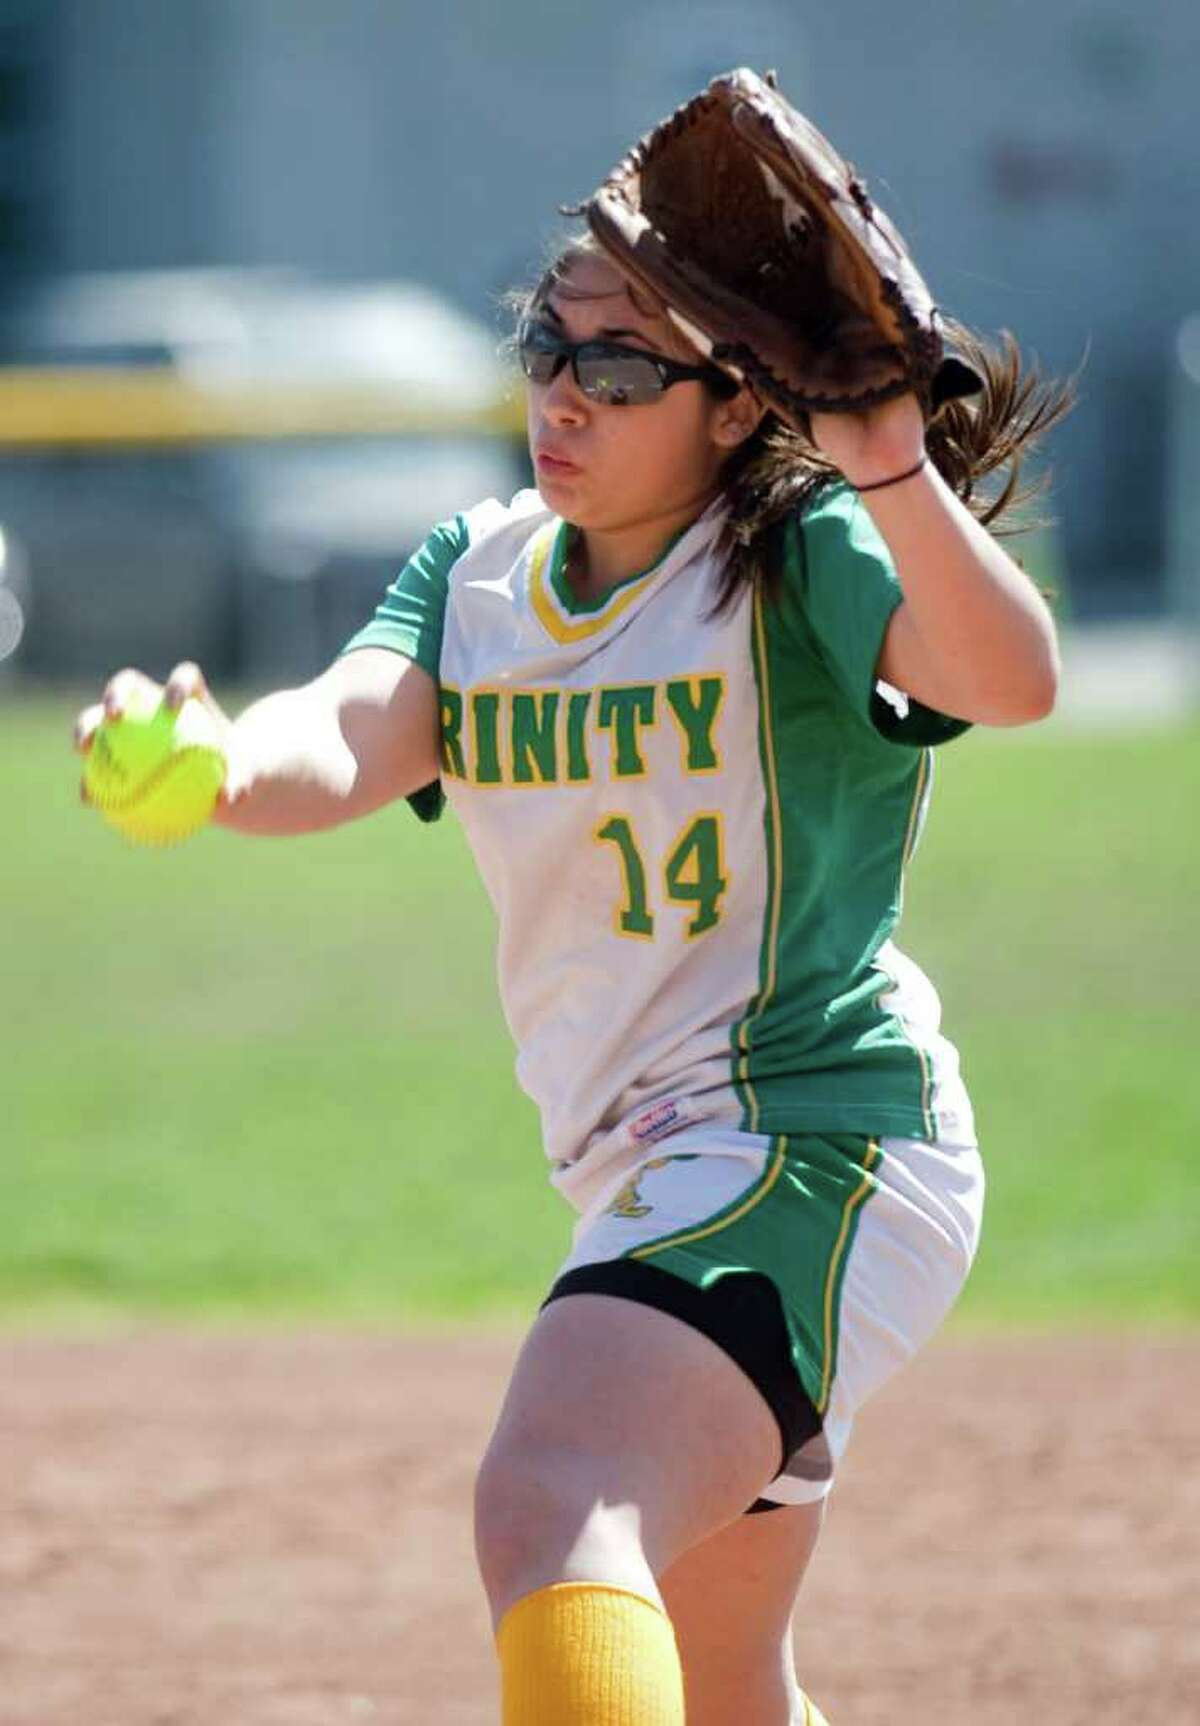 Trinity Catholic's Krissy Schule delivers to the plate against Westhill in softball action in Stamford, Conn. on Saturday April 9, 2011. Westhill won 6-0.